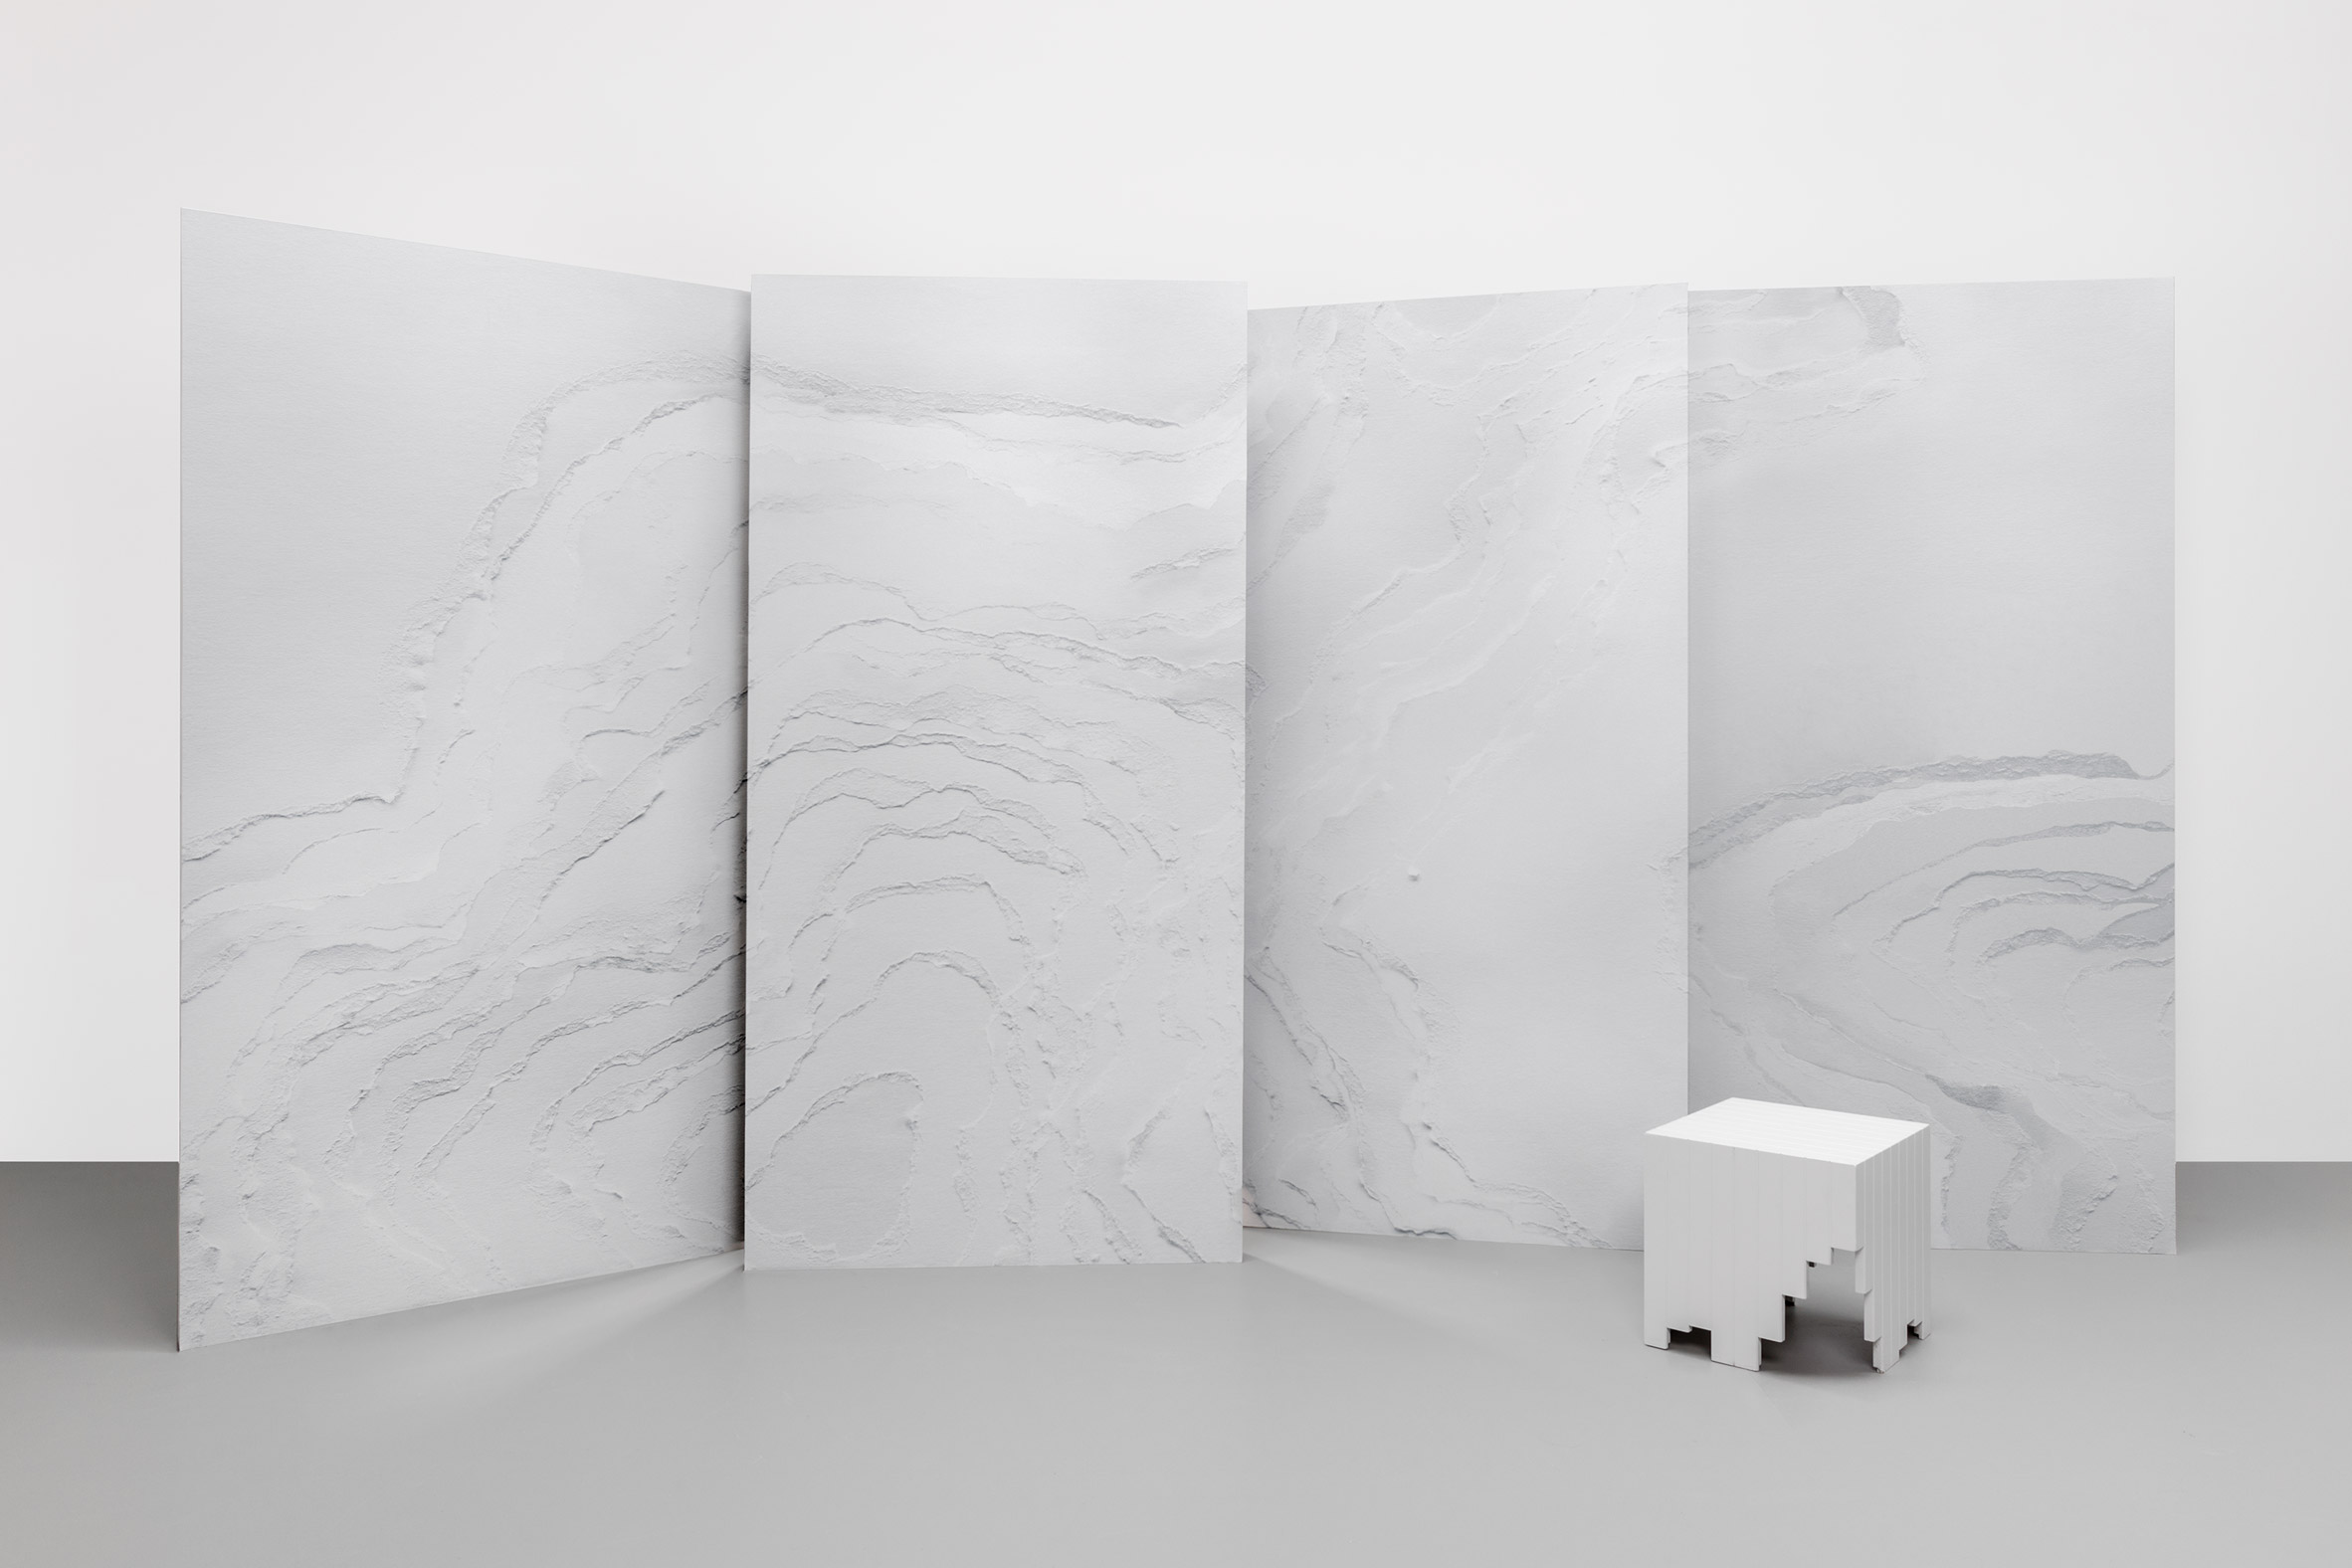 Snarkitecture and Faye Toogood debut wallpaper designs for Calico